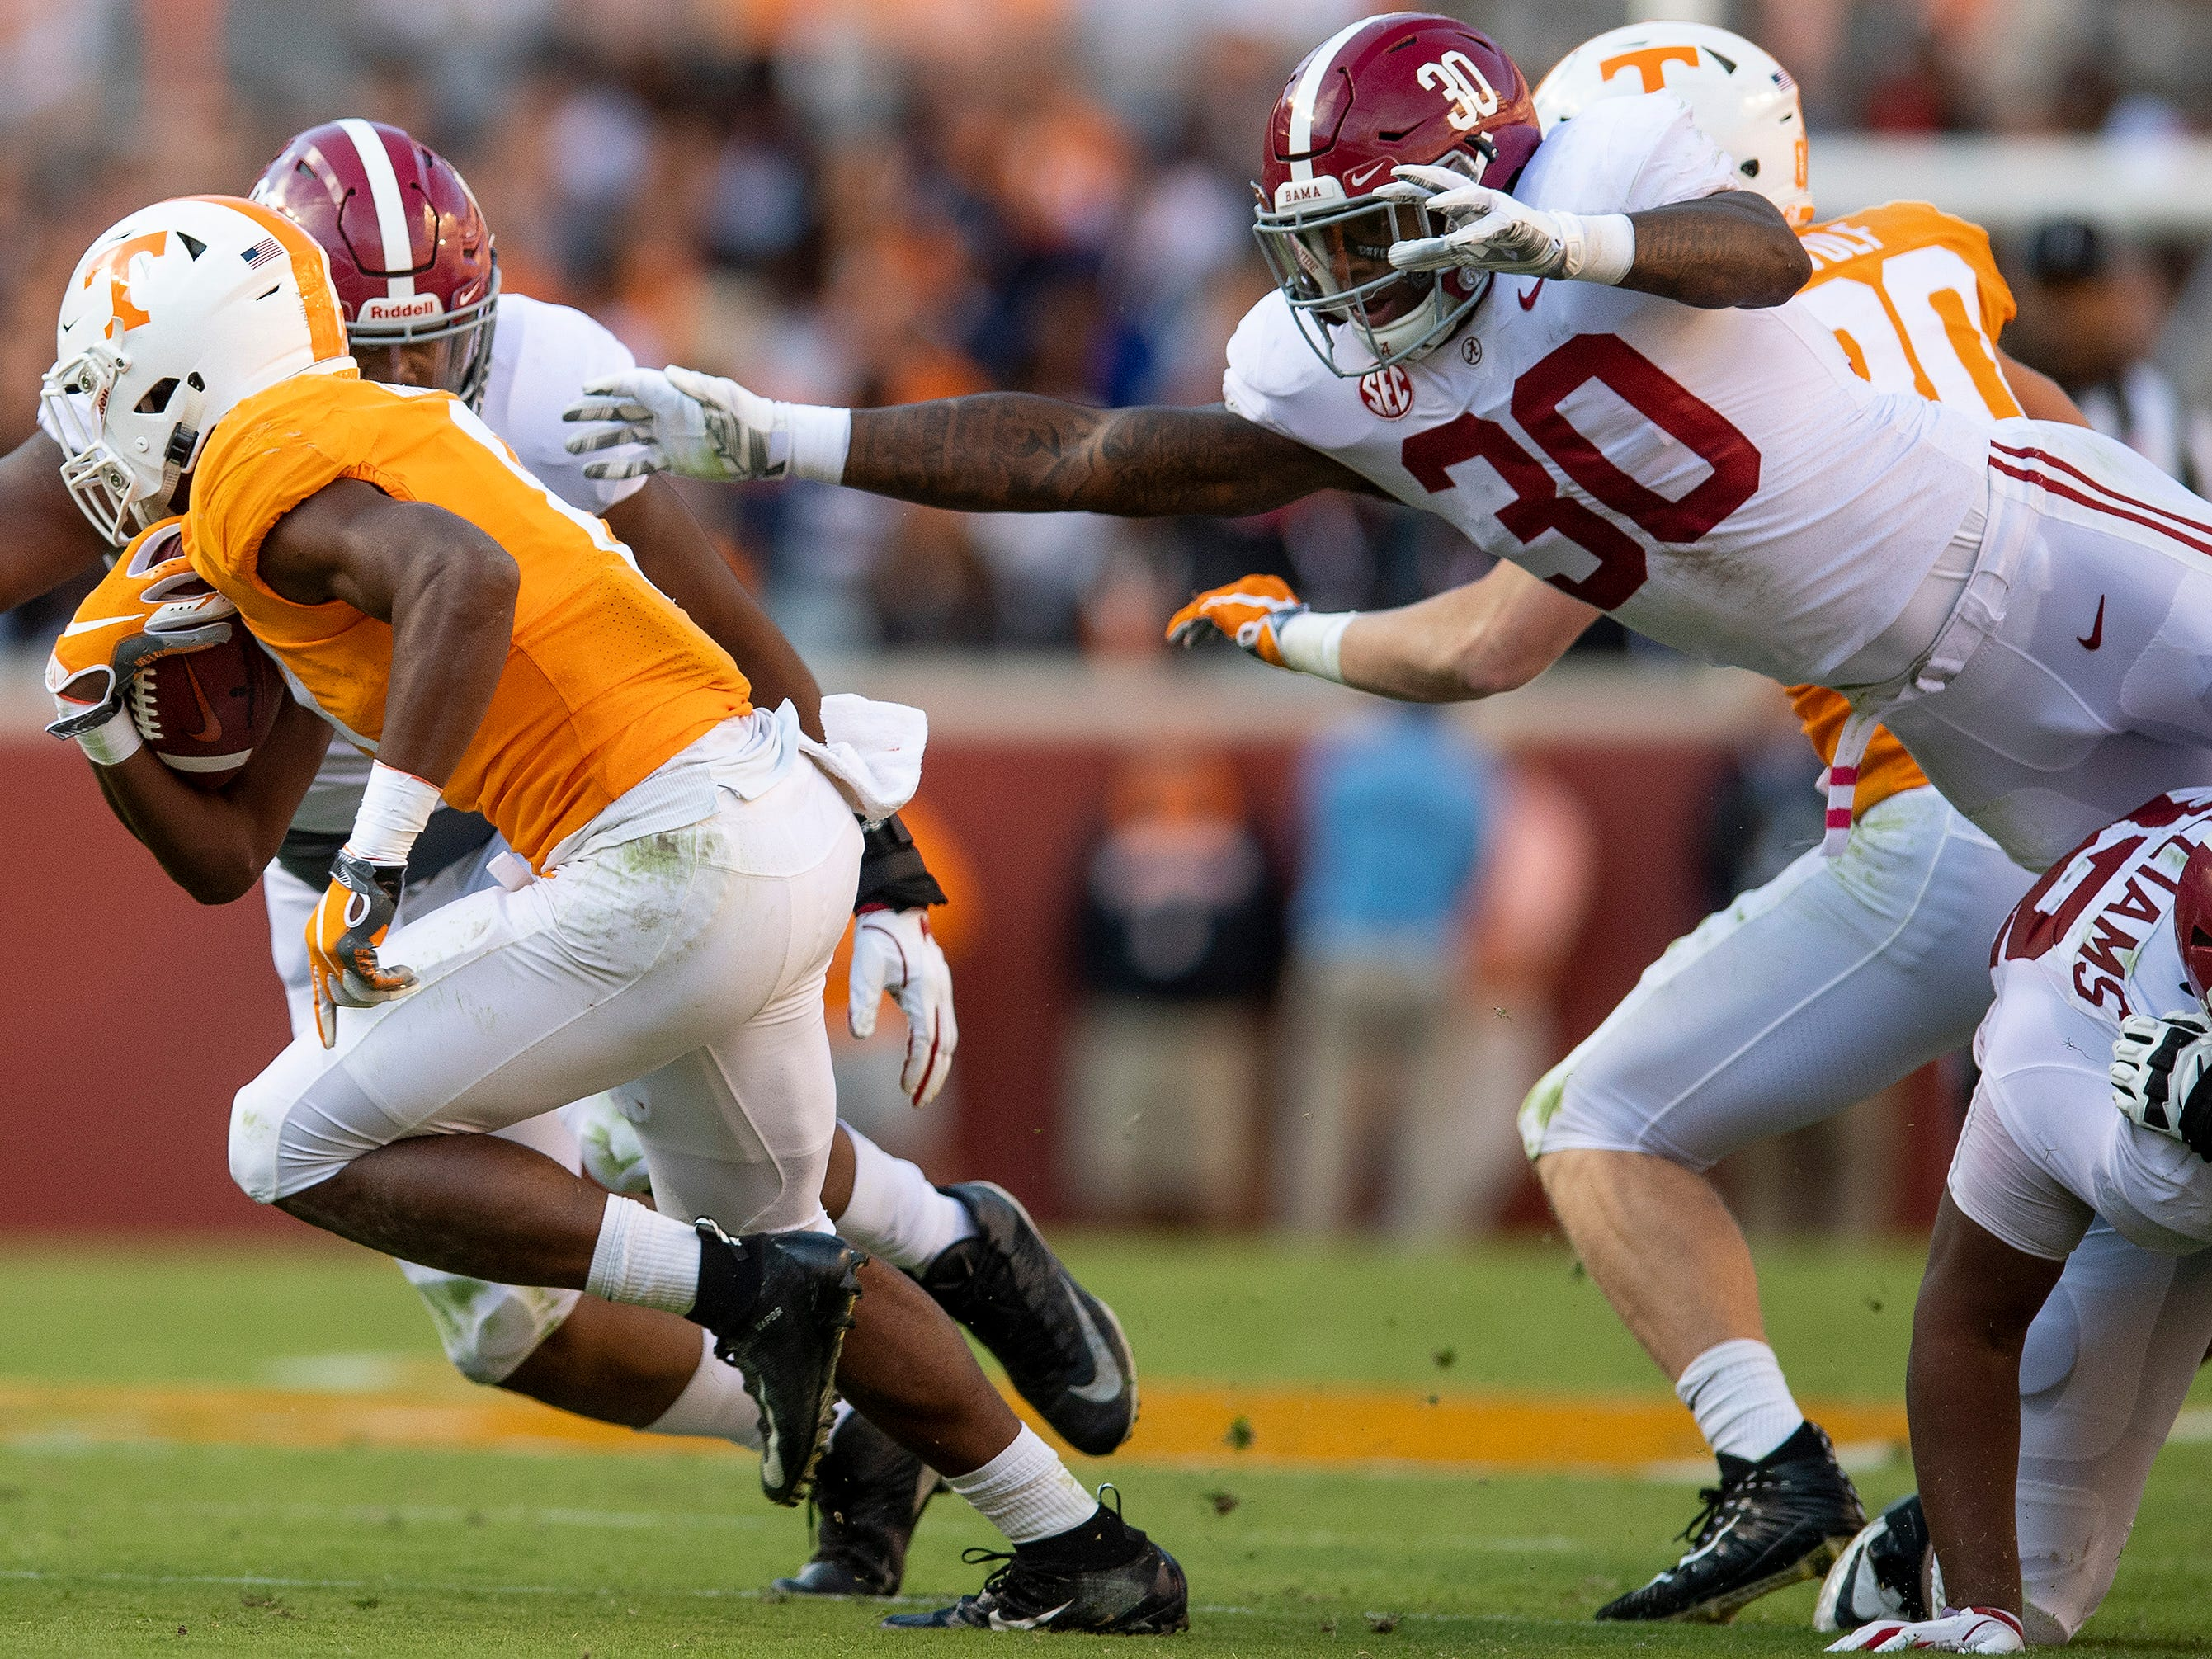 Alabama linebacker Mack Wilson (30) and defensive lineman LaBryan Ray (89) pursue Tennessee running back Ty Chandler (8) in first half action at Neyland Stadium in Knoxville, Tn., on Saturday October 20, 2018.